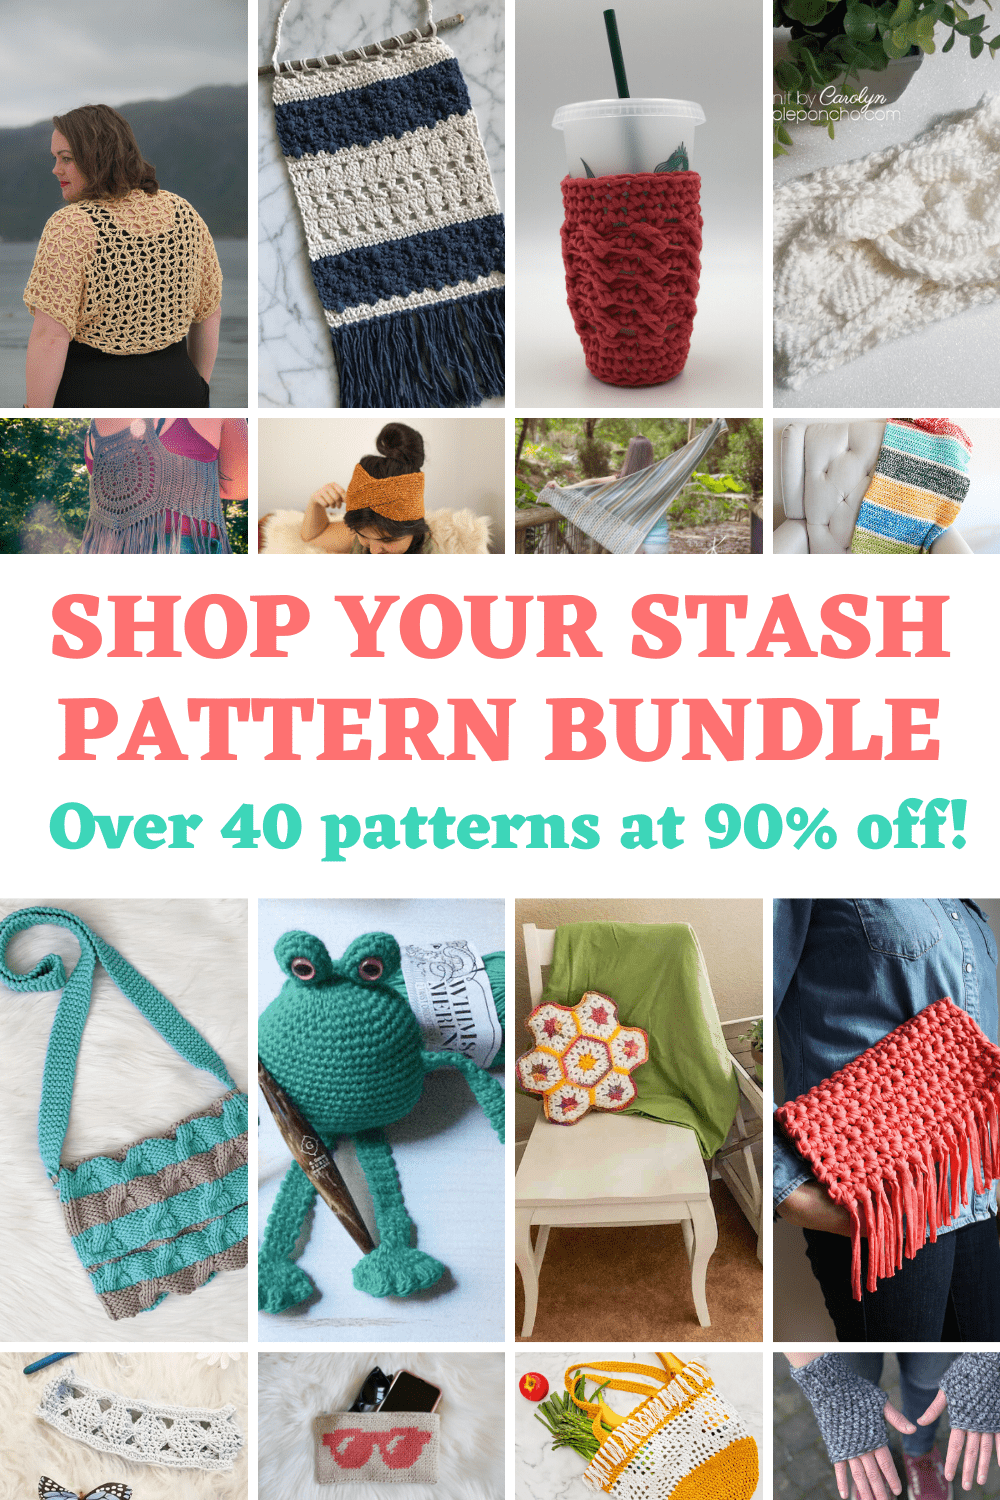 SHOP YOUR STASH PATTERN BUNDLE